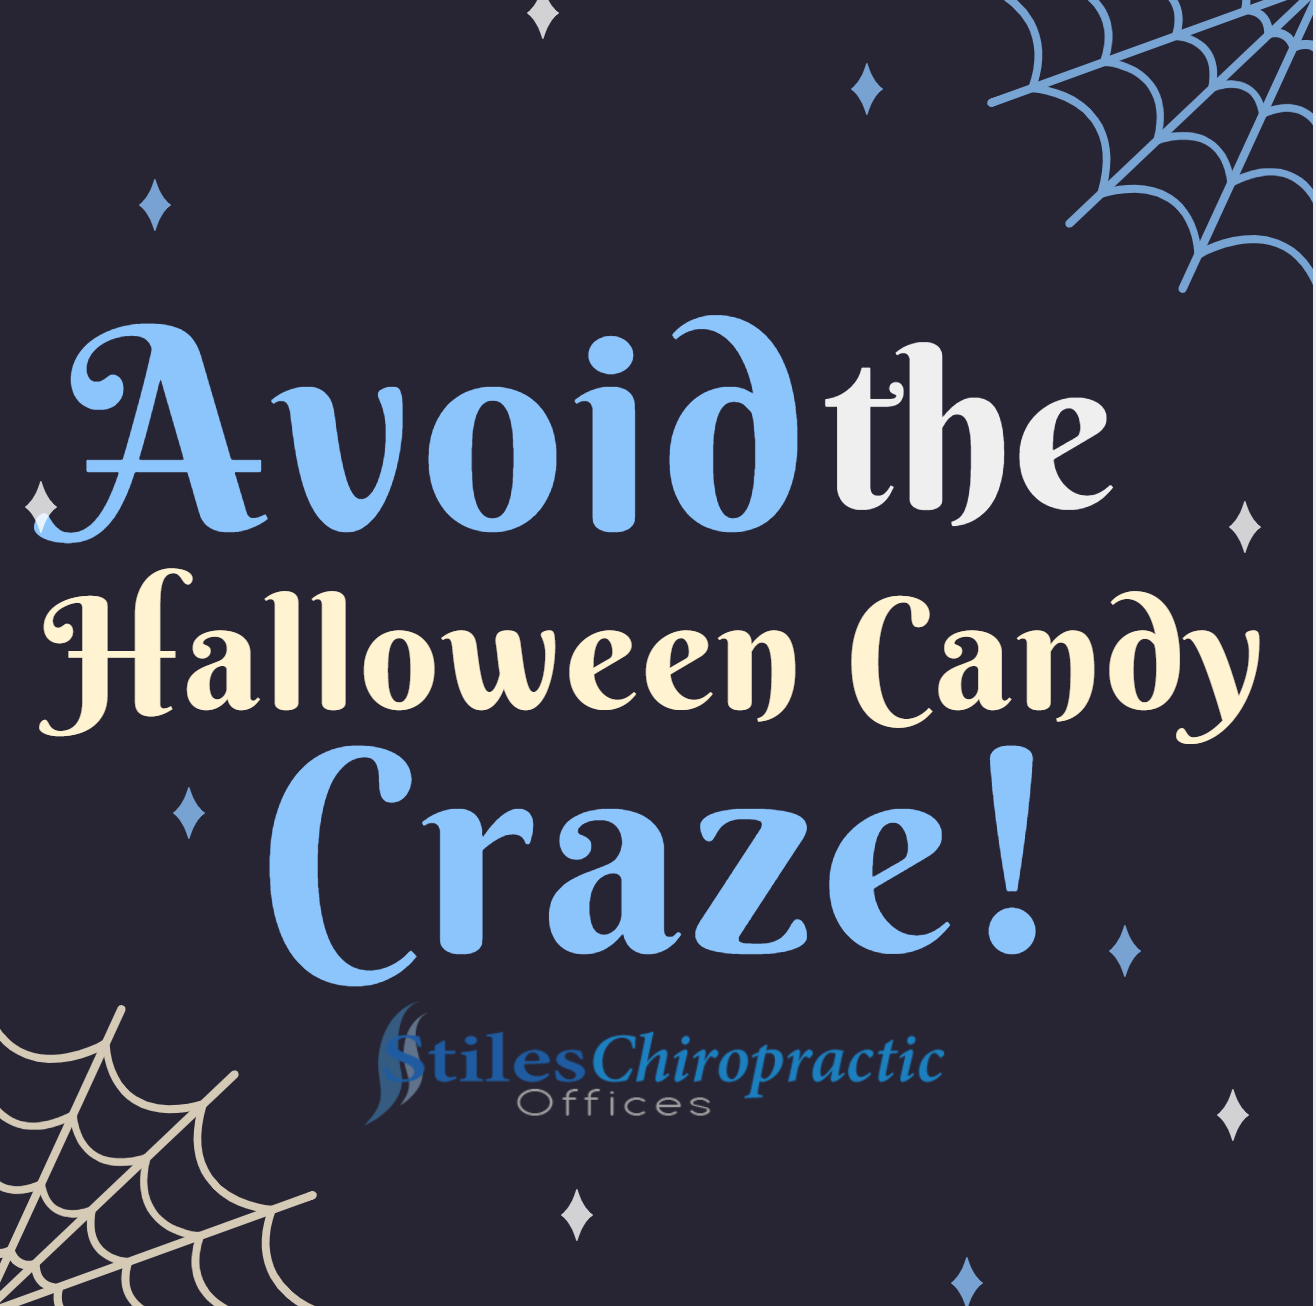 stiles-chiropractic-halloween-candy.PNG